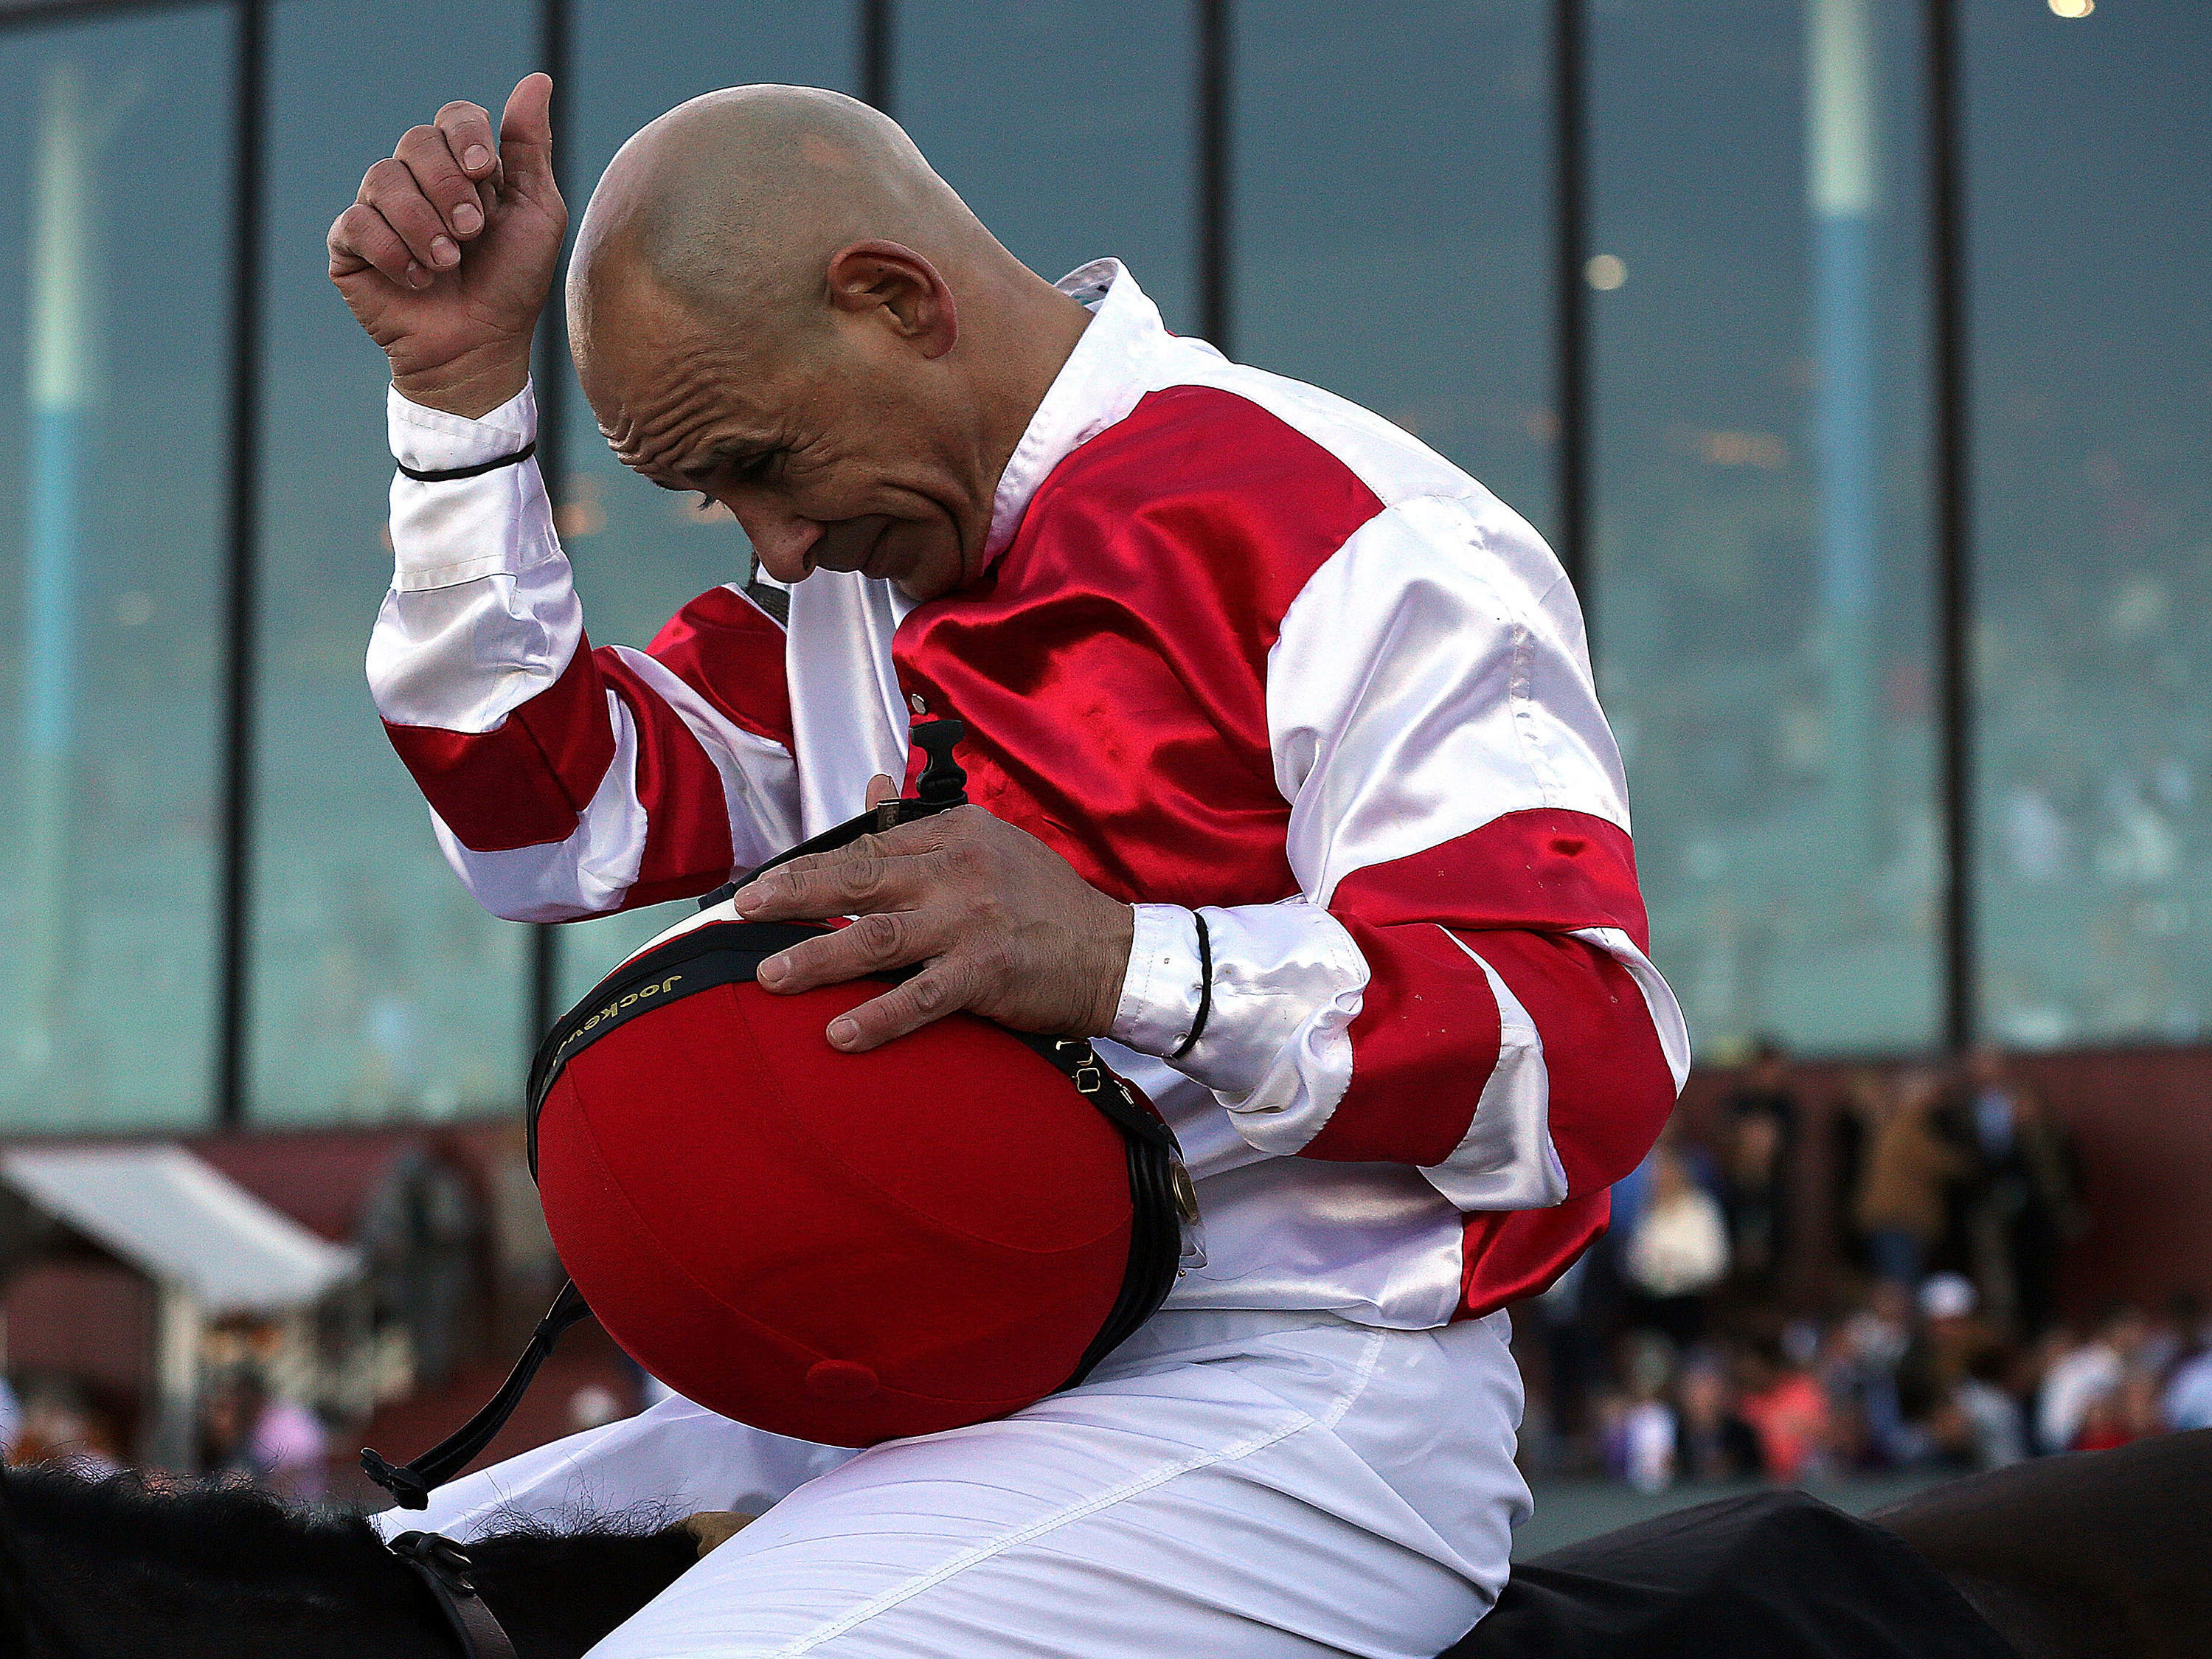 Jockey Mike Smith says a prayer after riding Omaha Beach to win the second division of the Rebel Stakes  horse race, Saturday, March 16, 2019, at Oaklawn Park in Hot Springs, Ark.